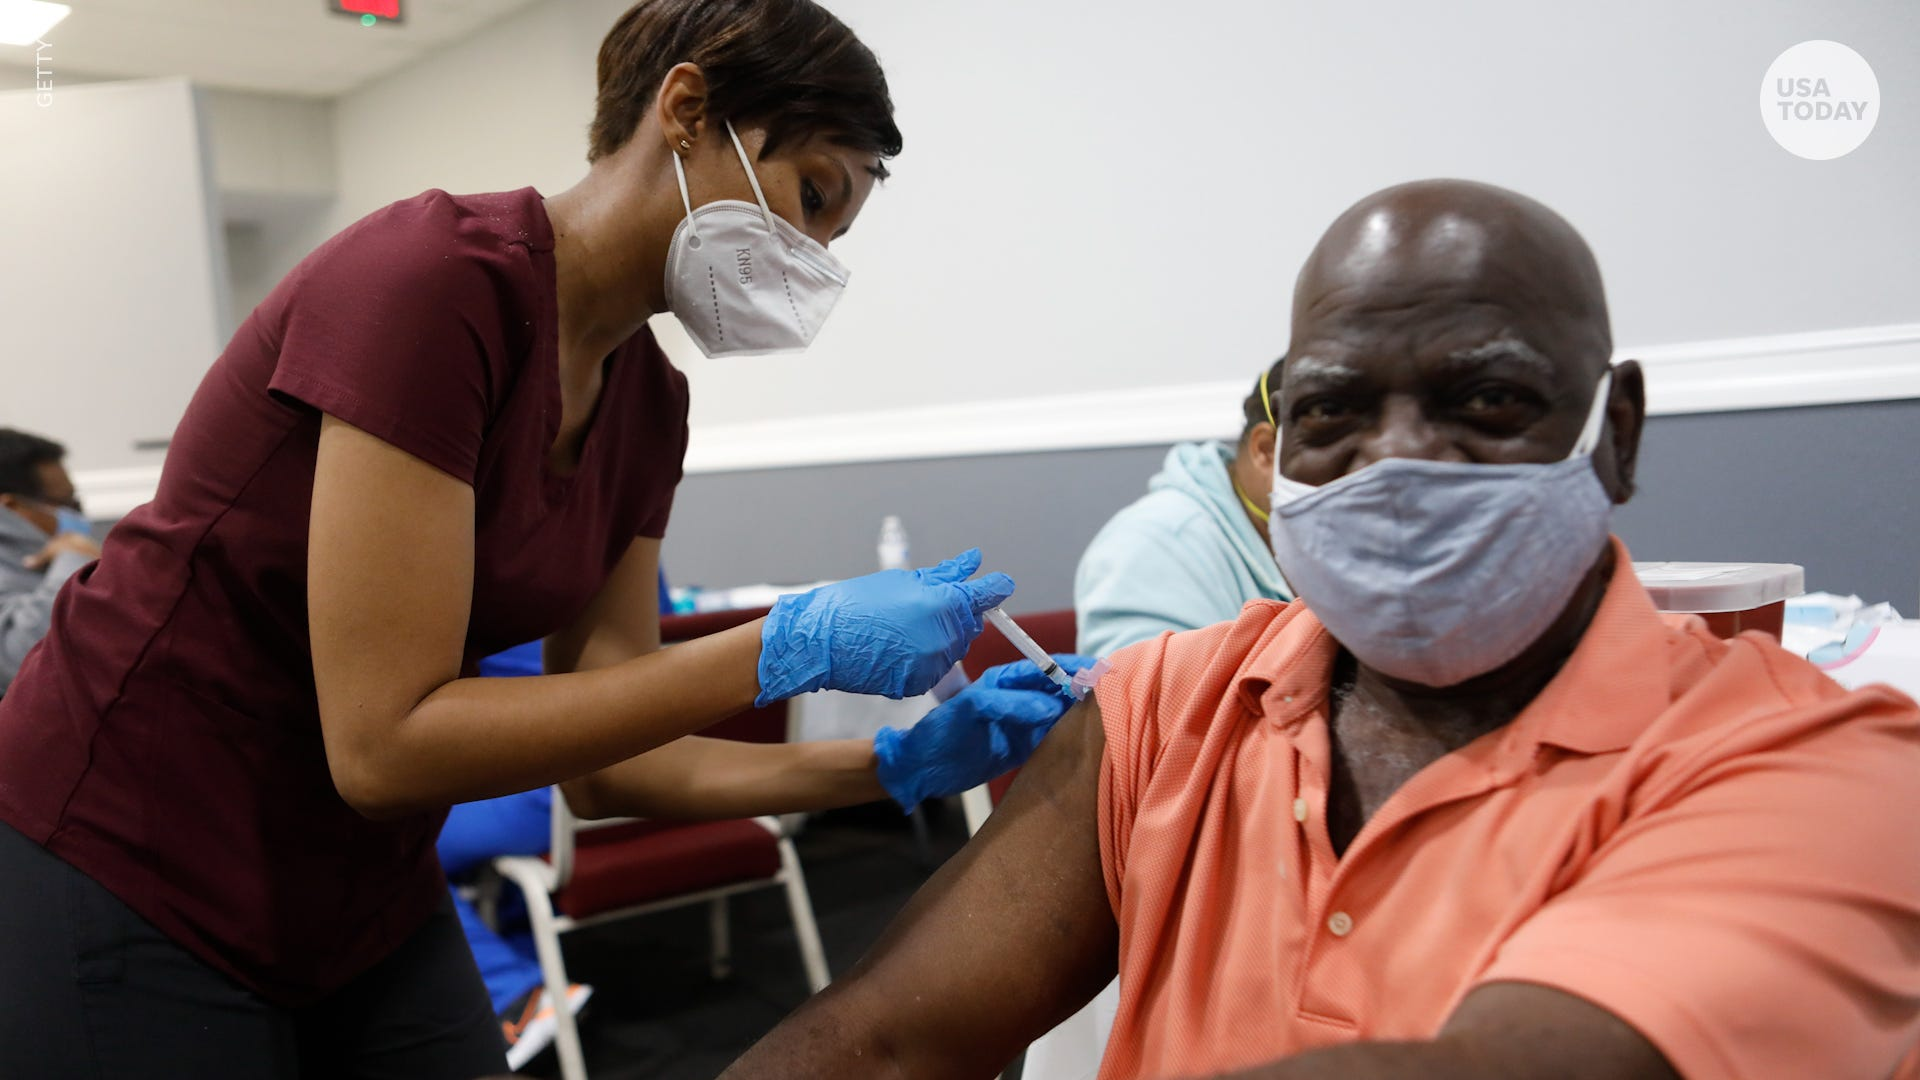 Health inequalities, mistrust contributing to lagging vaccination rates among black Americans